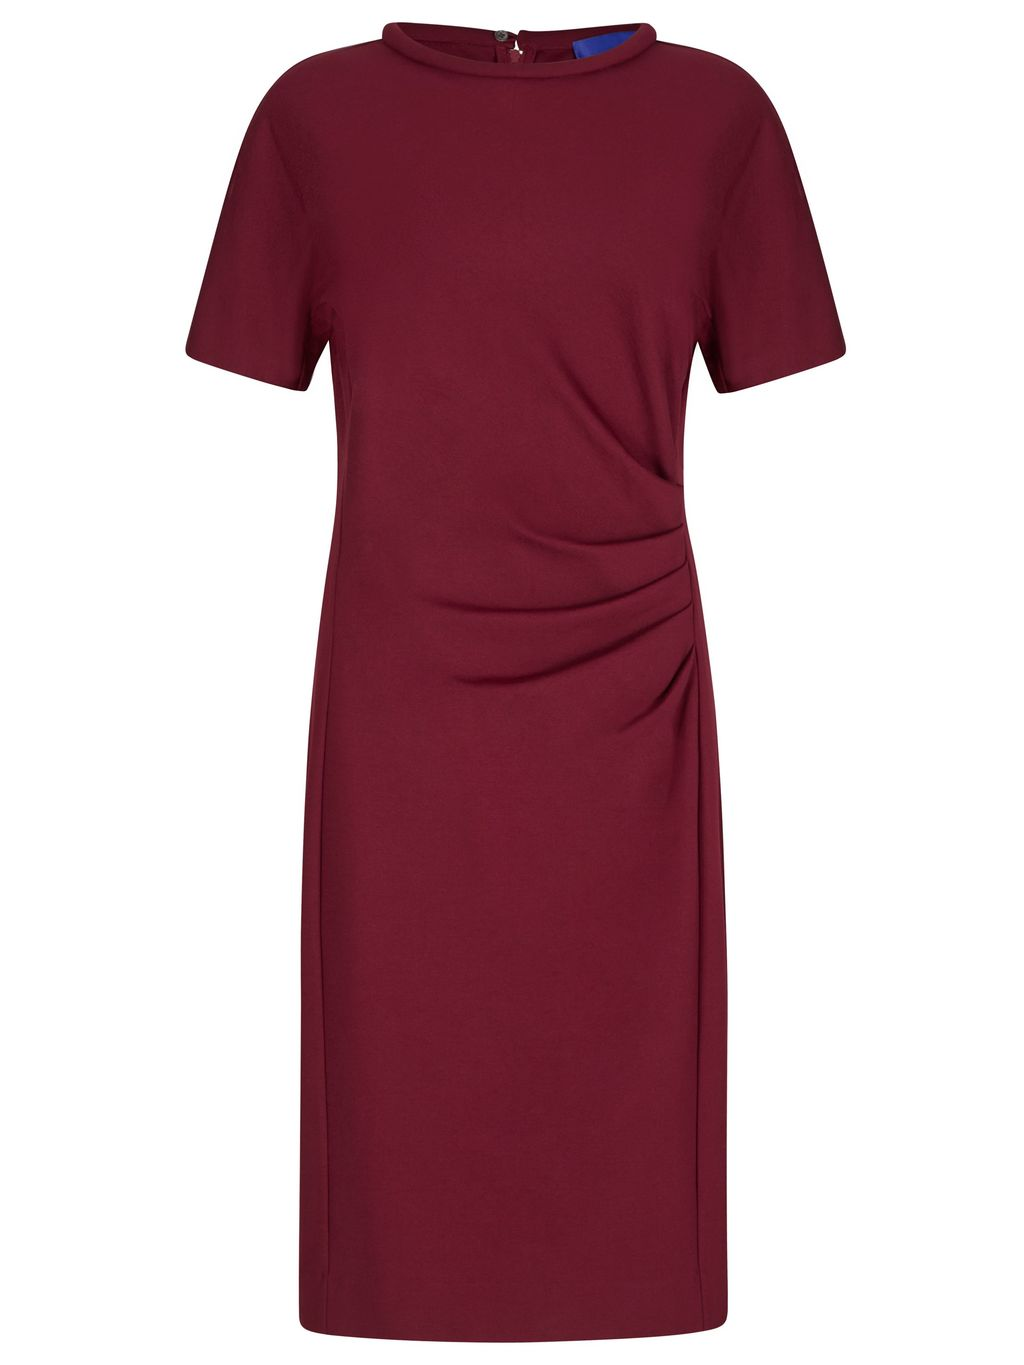 Miracle Short Sleeve Dress, Red - style: shift; pattern: plain; predominant colour: burgundy; occasions: evening, work, creative work; length: just above the knee; fit: body skimming; fibres: viscose/rayon - 100%; neckline: crew; sleeve length: 3/4 length; sleeve style: standard; pattern type: fabric; texture group: jersey - stretchy/drapey; season: s/s 2016; wardrobe: highlight